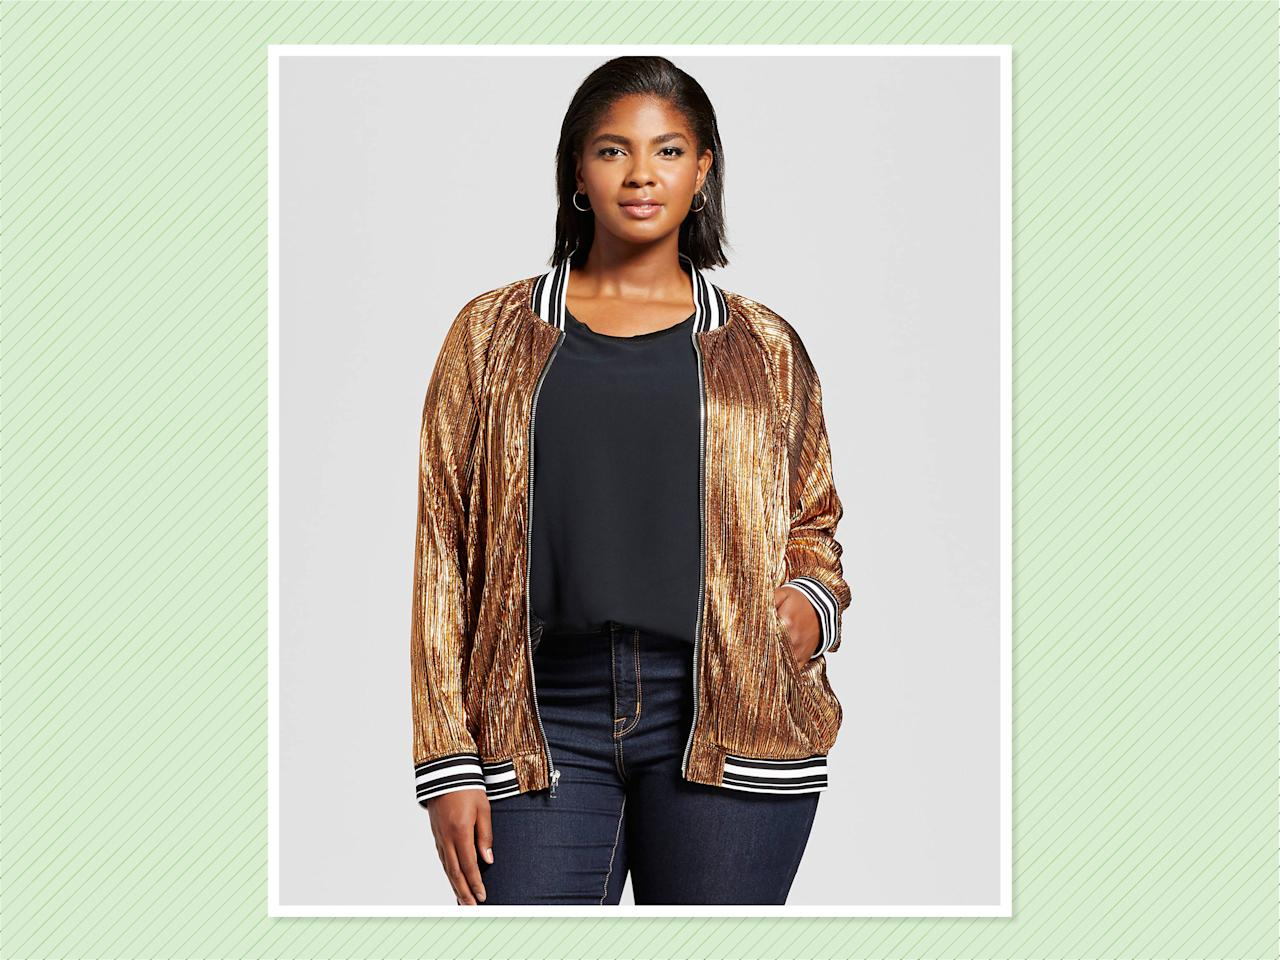 "<p>Ava & Viv Pleated Metallic Bomber, $35, <a rel=""nofollow"" href=""https://www.target.com/p/women-s-plus-size-pleated-metallic-bomber-jacket-ava-viv-153/-/A-52377431#lnk=sametab&preselect=52293643"">Target</a> (Photo: Target) </p>"